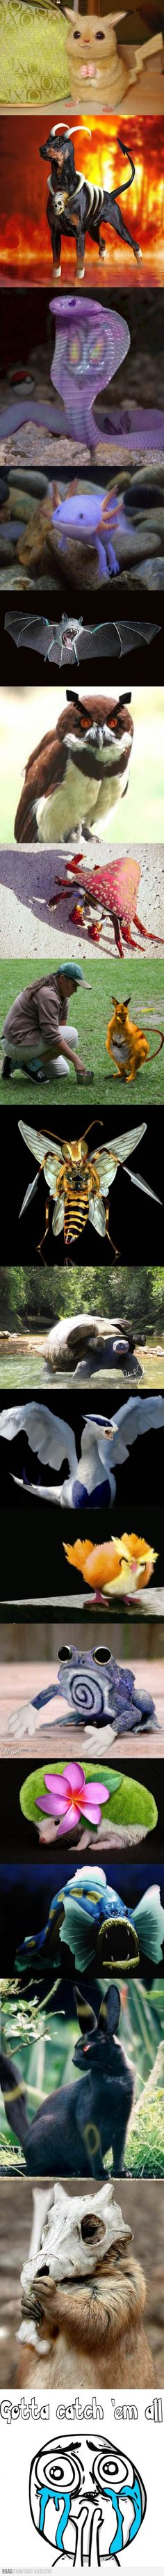 If Pokemon was real - This is all kinds of messed up.